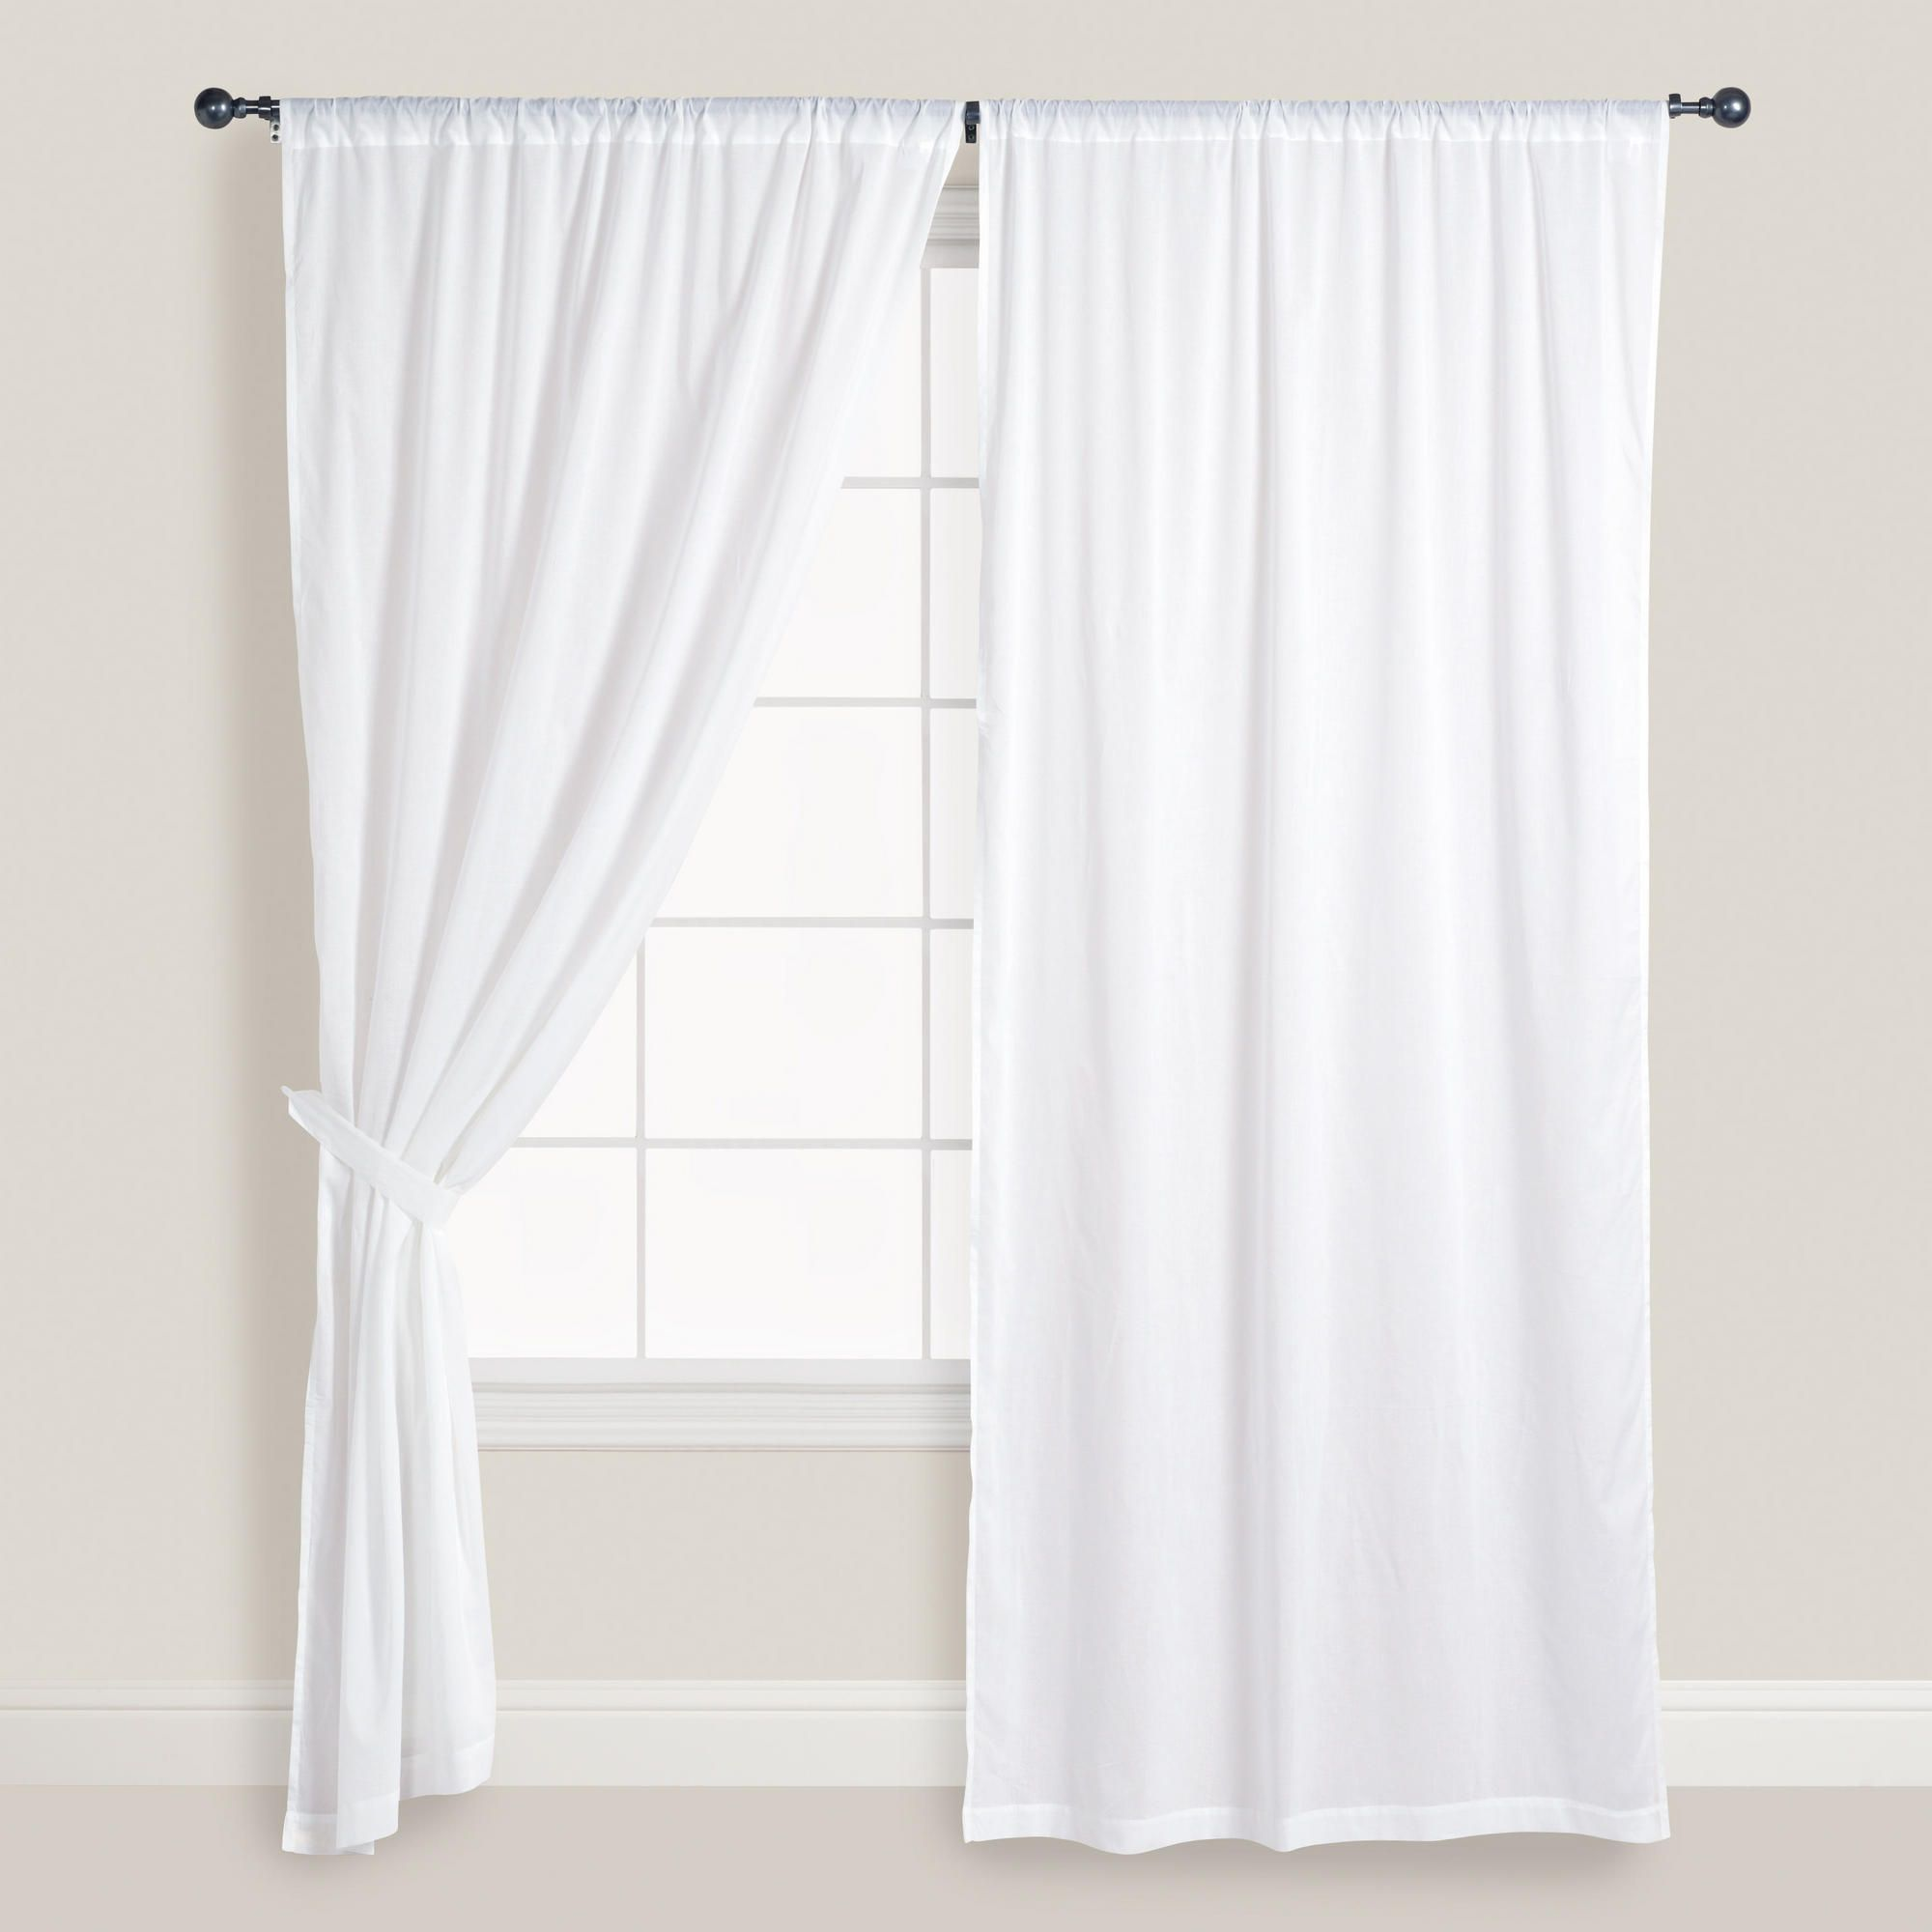 White Cotton Voile Curtains Set of 2  Window Doors and